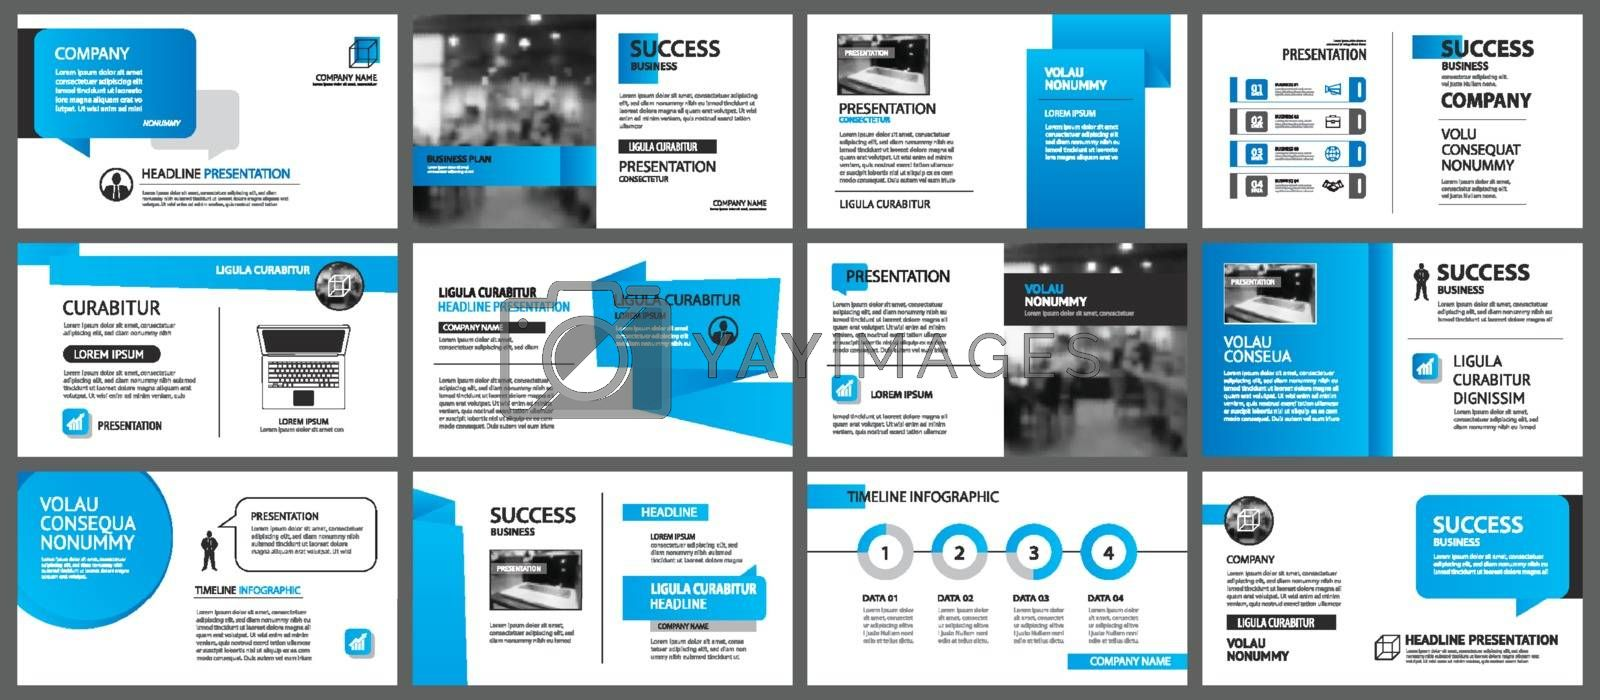 Presentation and slide layout template. Design blue gradient in paper shape background. Use for business annual report, flyer, marketing, leaflet, advertising, brochure, modern style.